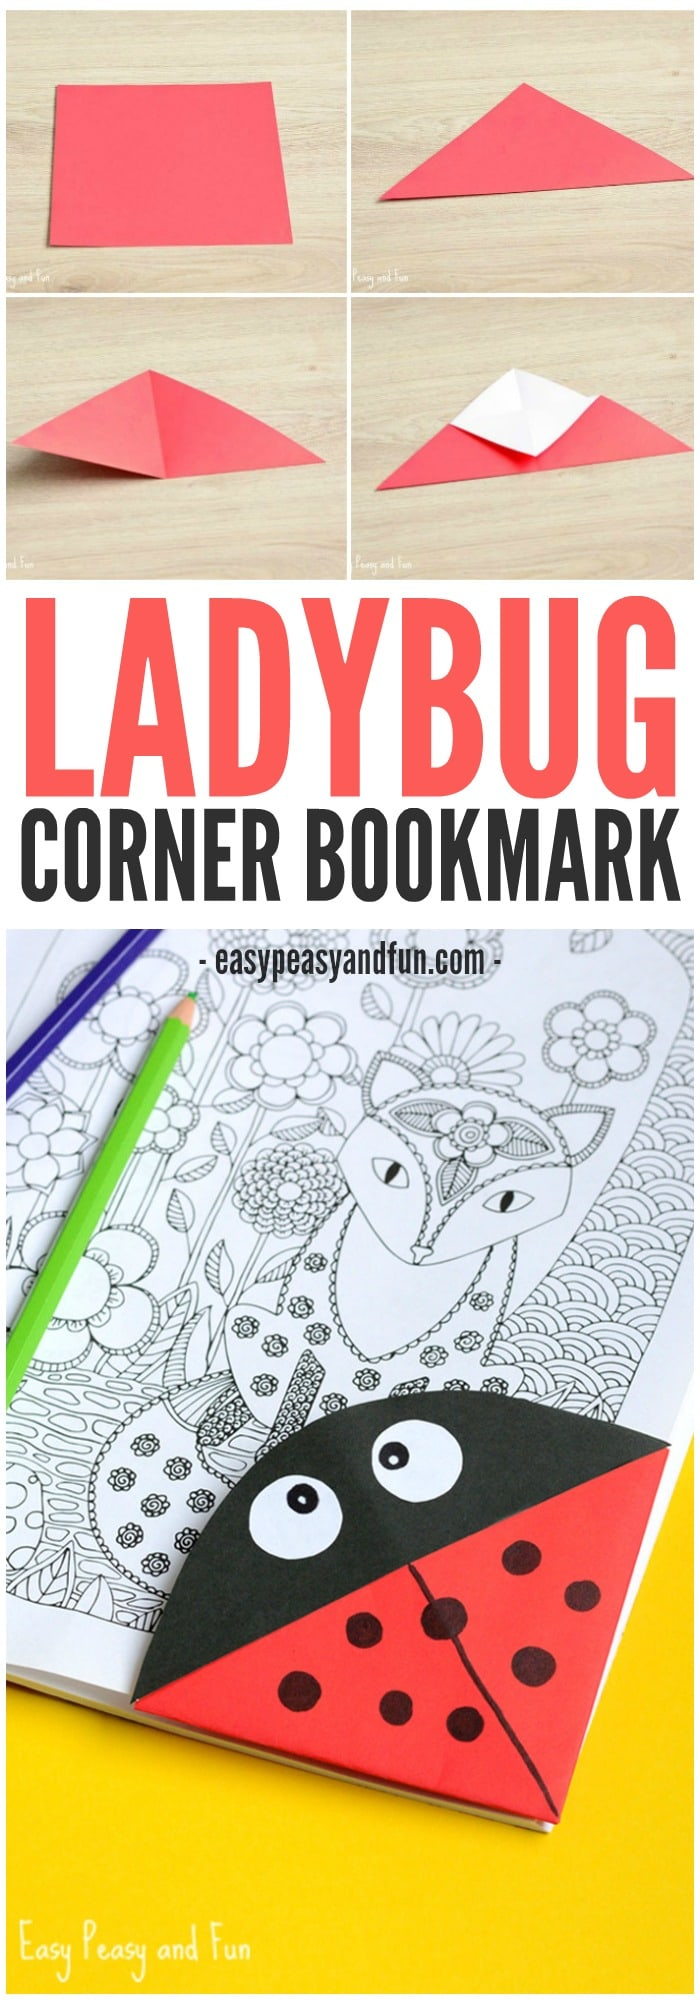 Ladybug Corner Bookmark Paper Craft for Kids